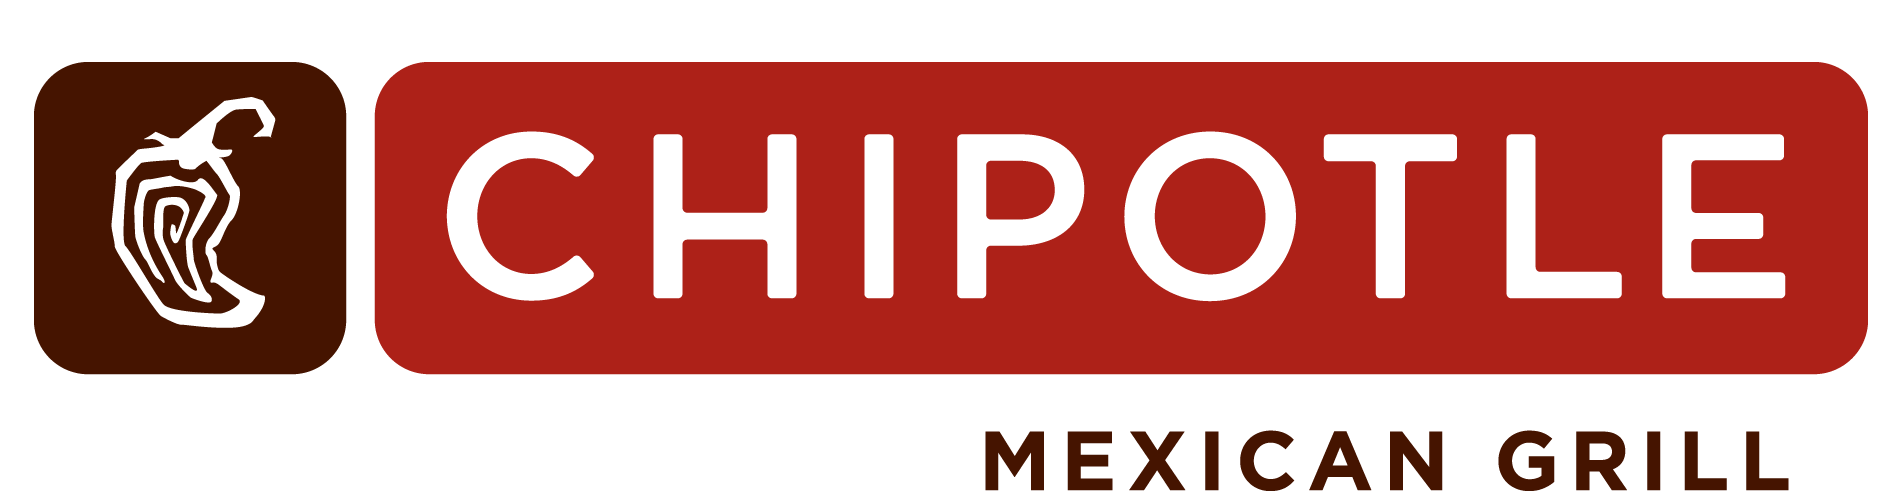 Chipotle logo png. Transparent stickpng